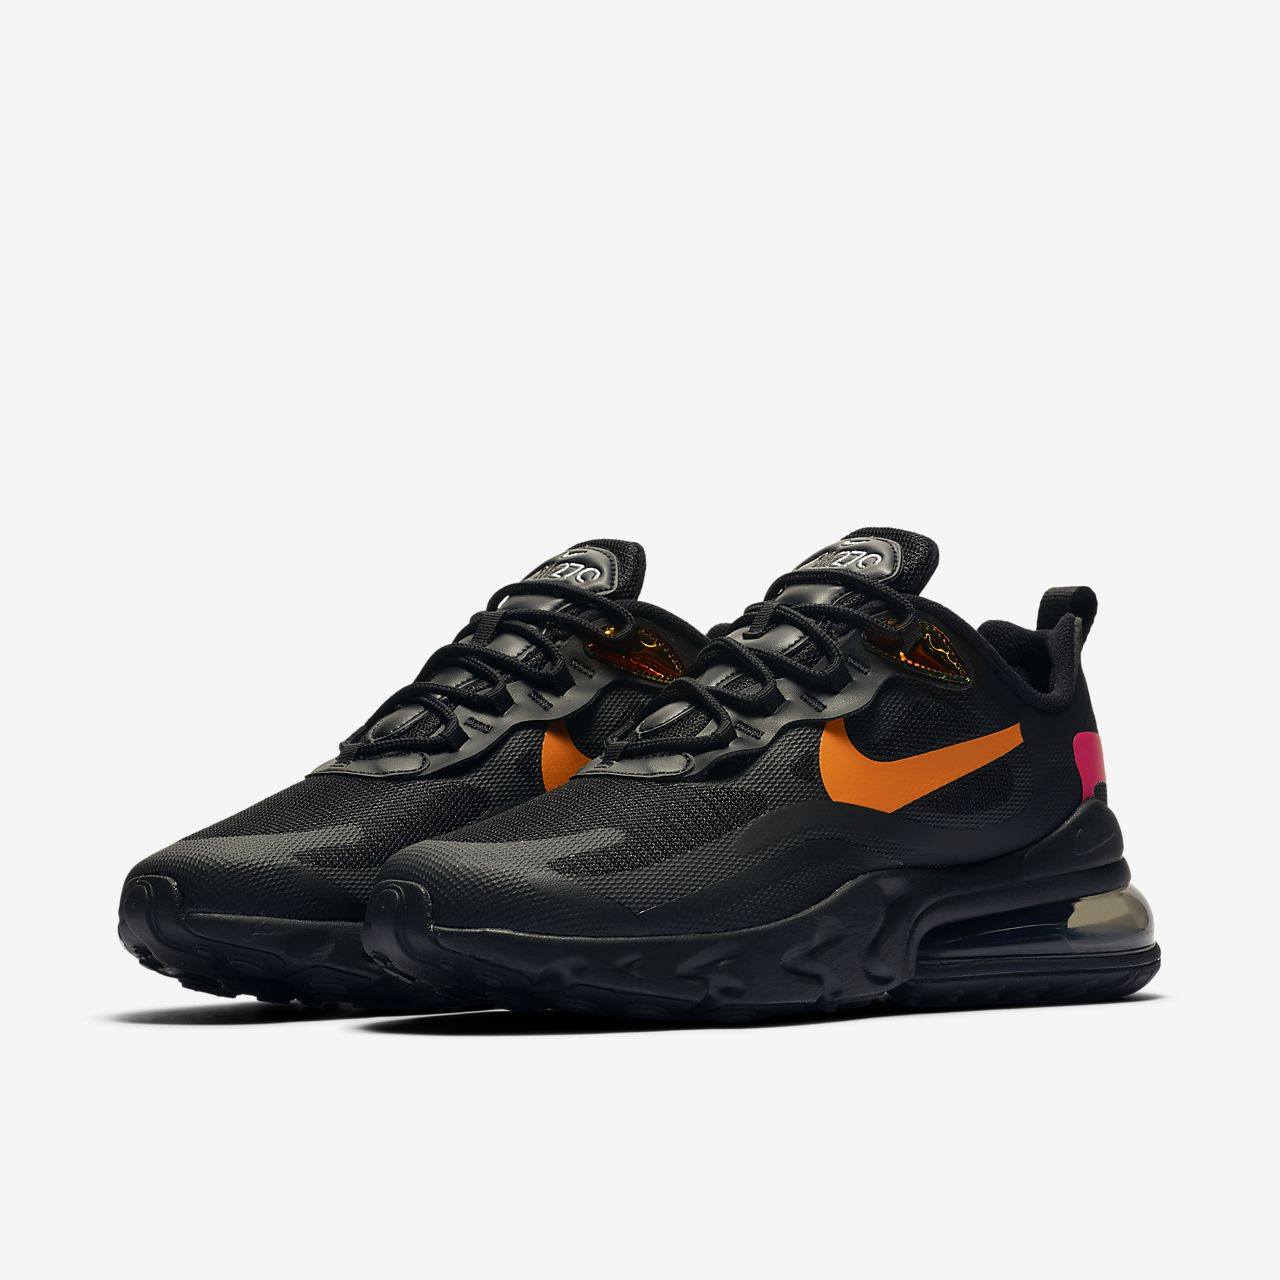 NIKE AIR MAX 270 BLACK ORANGE LEATHER MEN RUNNING SHOES